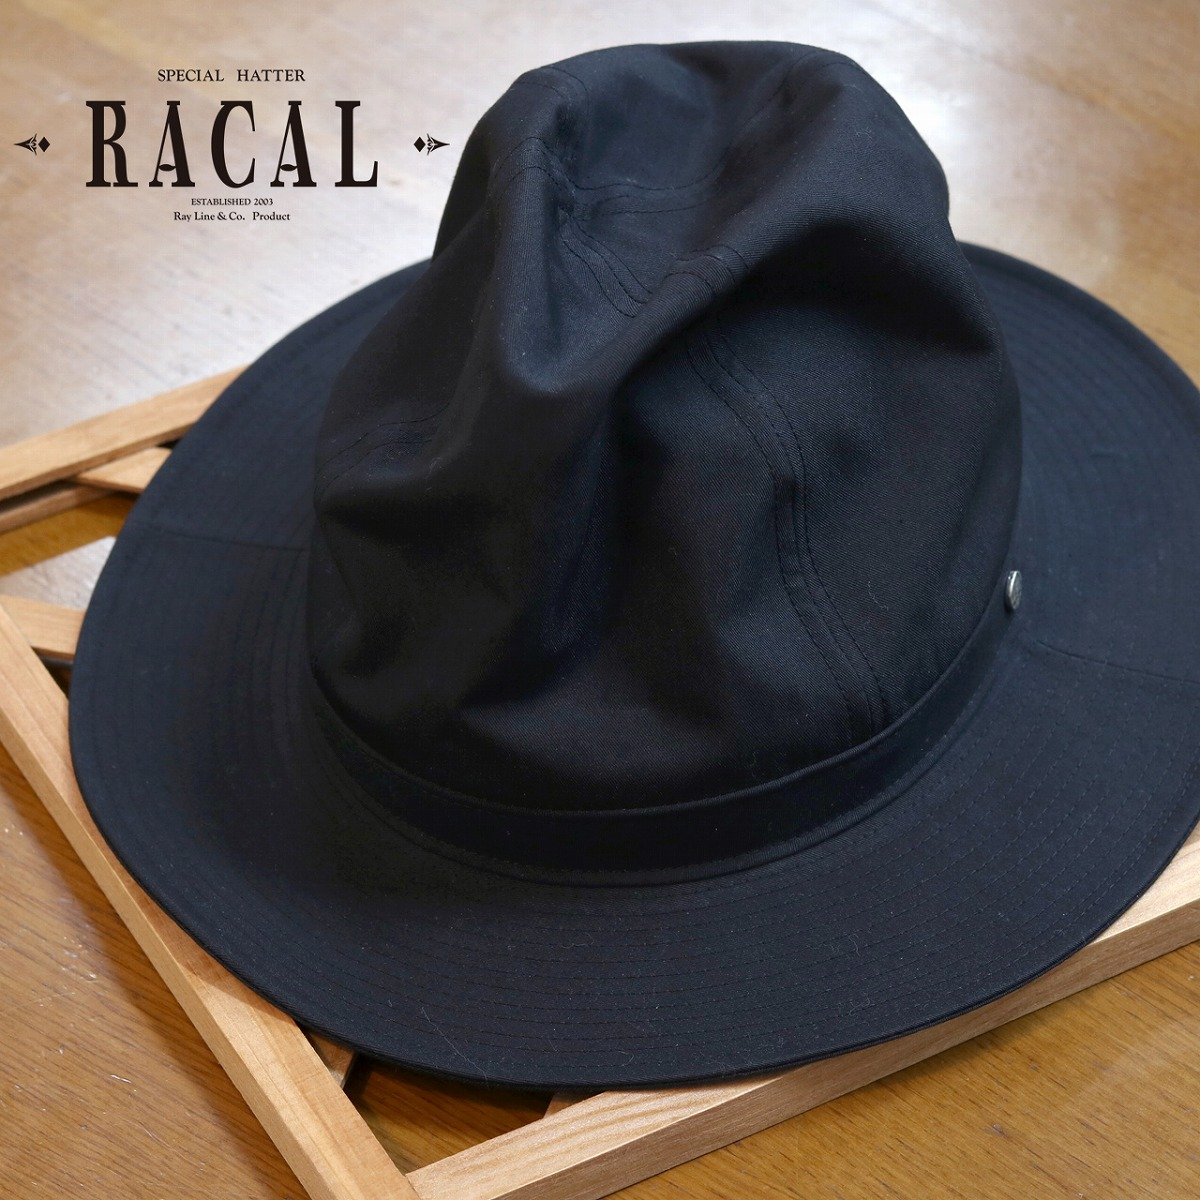 It is a hat present on Shin pull   black black  fedora   mountain hat  man  birthday made in natural soft felt hat hat racal hat hat men mountain hat  hat men ... cc085d41cfb